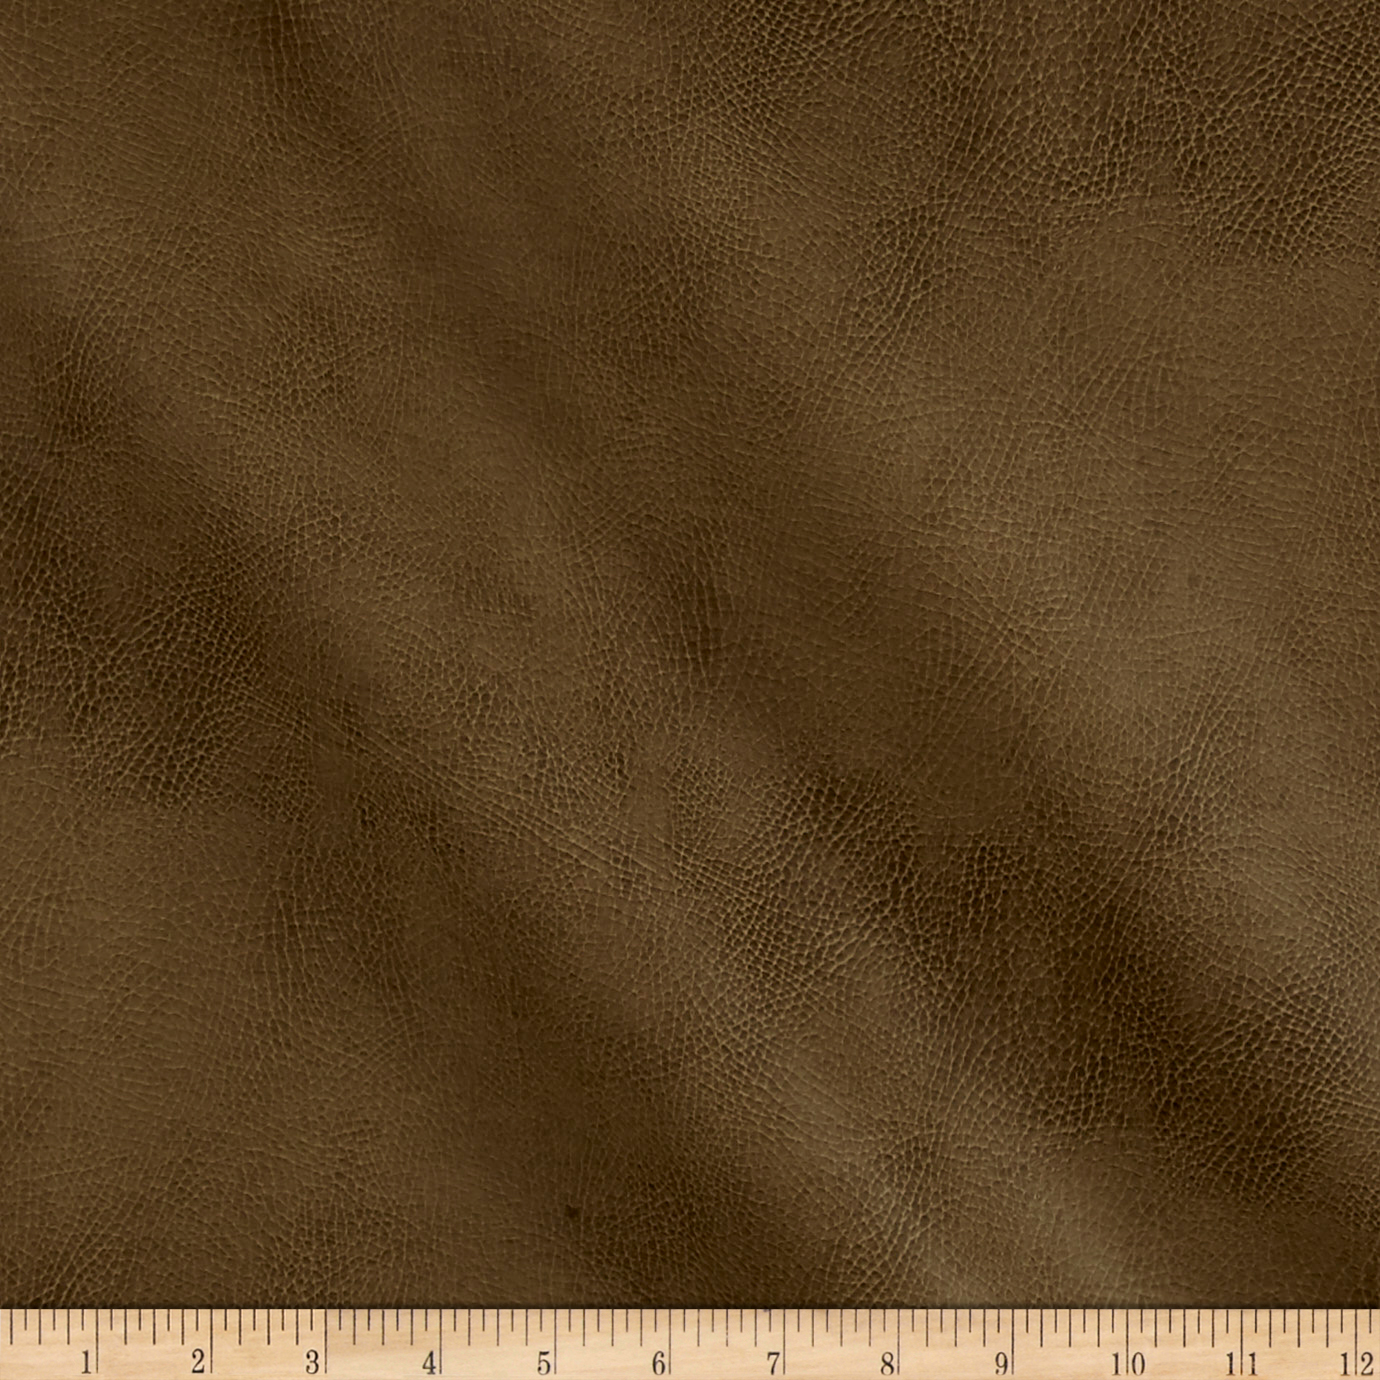 Richloom Tough Faux Leather Tiona Herb Fabric by TNT in USA